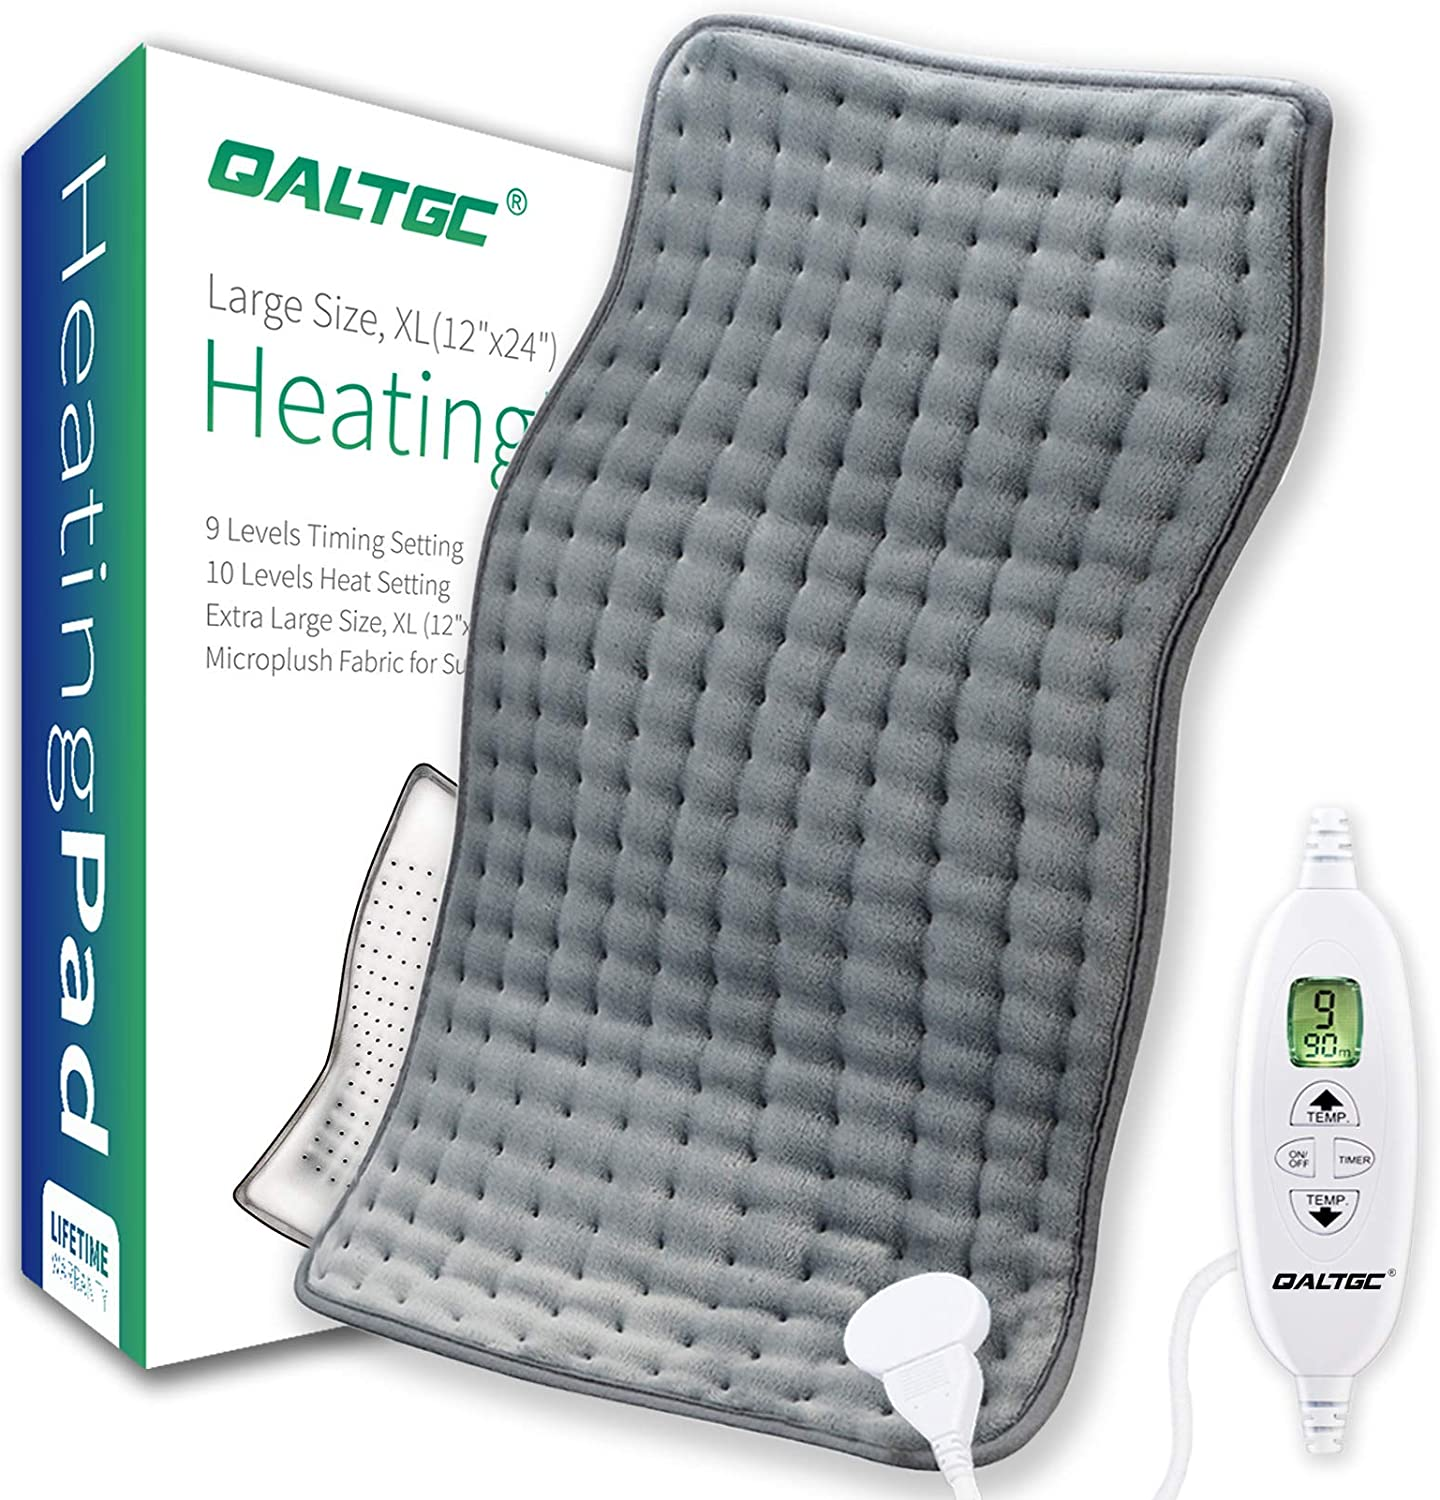 QALTGC Heating Pad for Back Pain and Cramp Relief 12